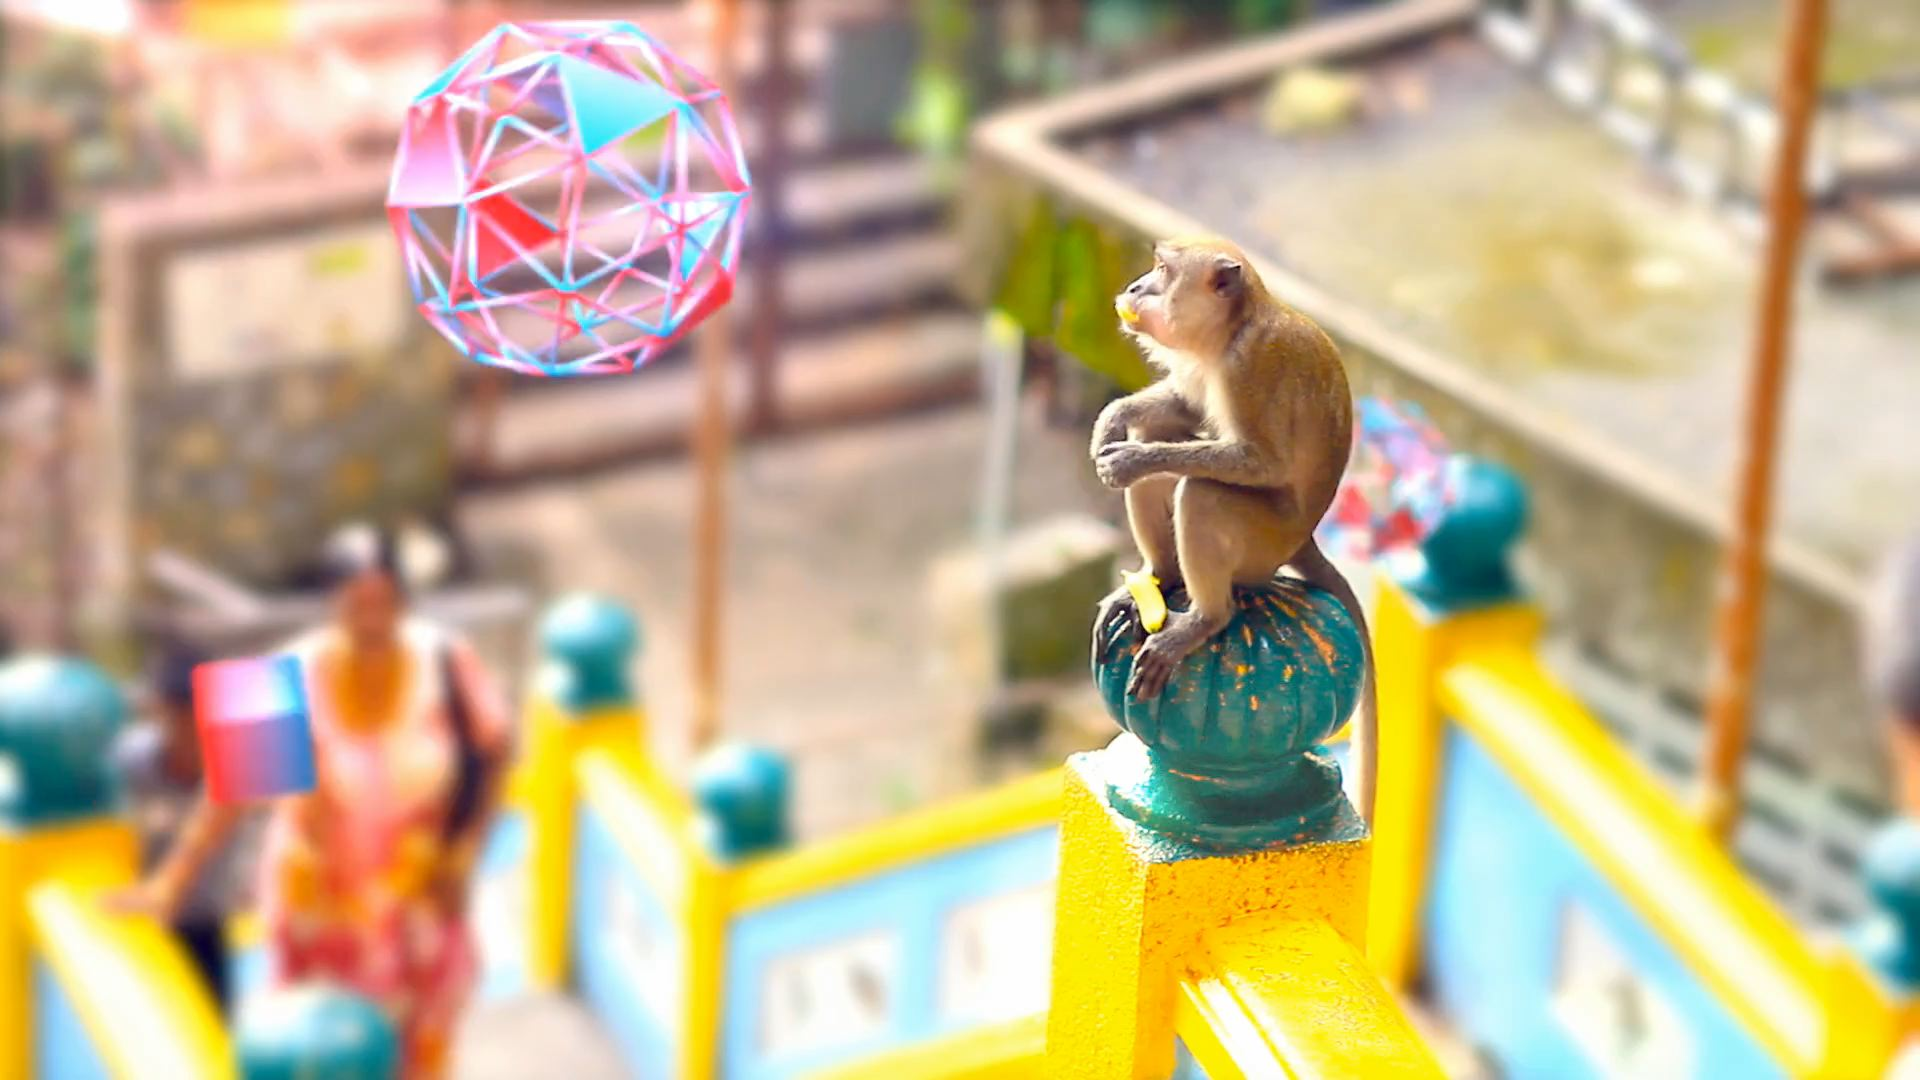 Live-action monkey looking at motion graphics flying past